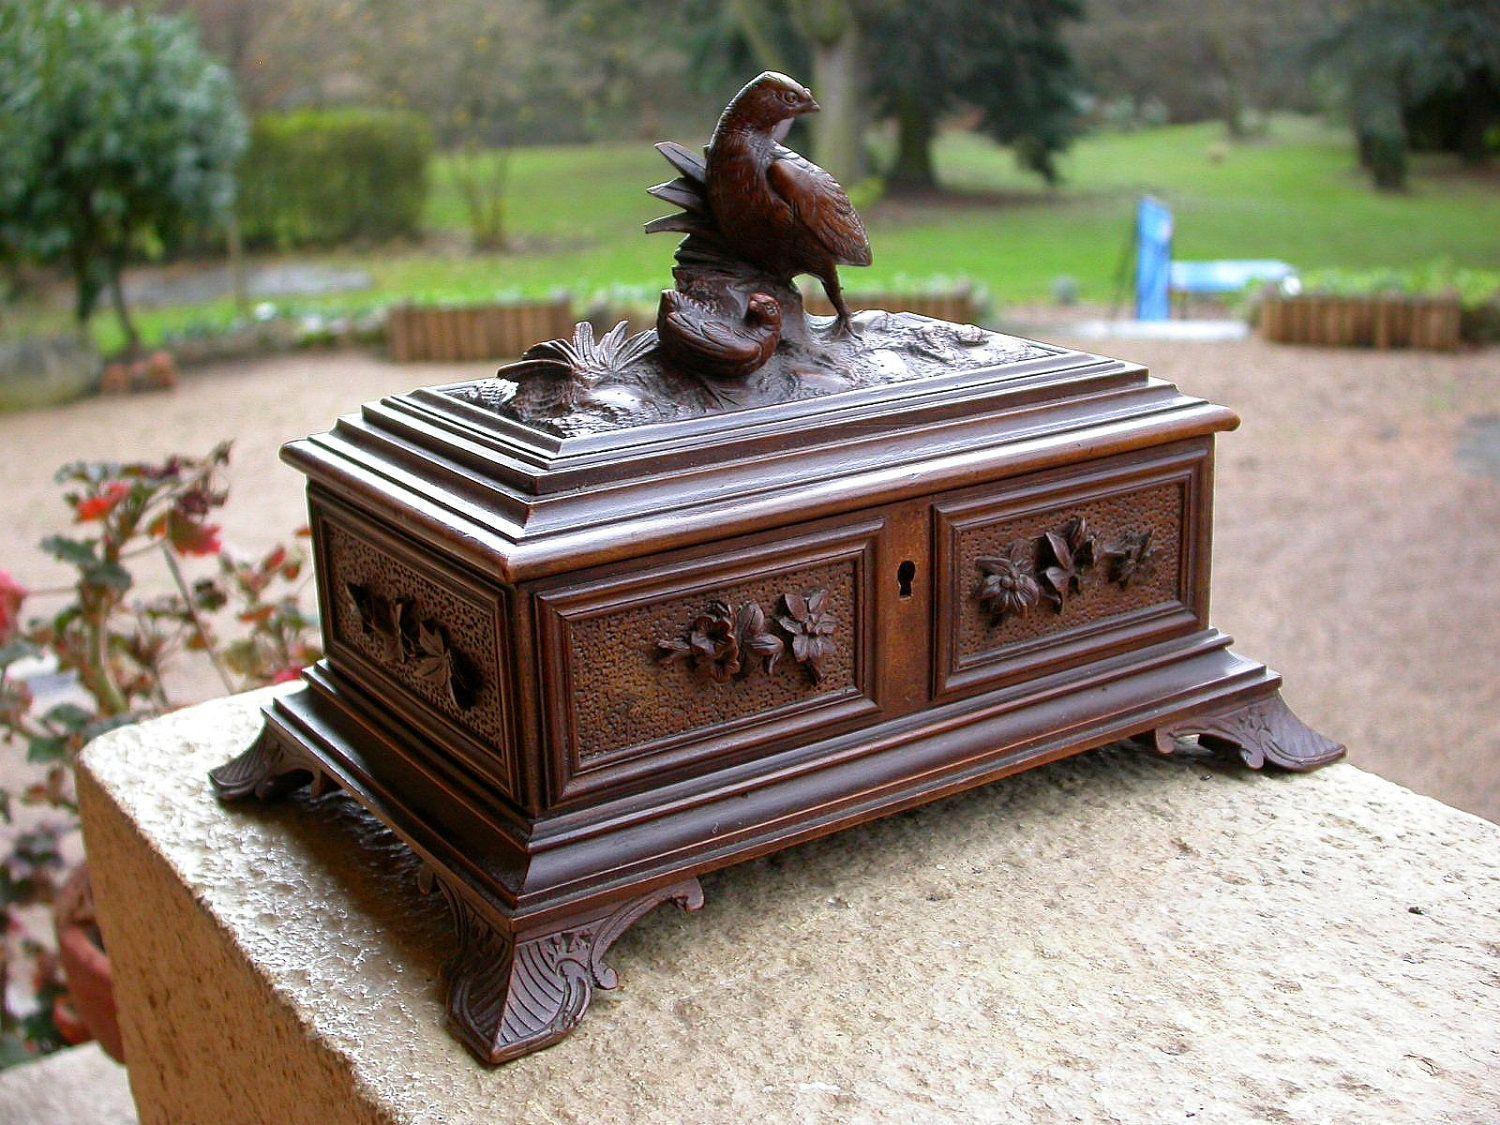 French antique jewelry box Antique jewelry boxes Pinterest